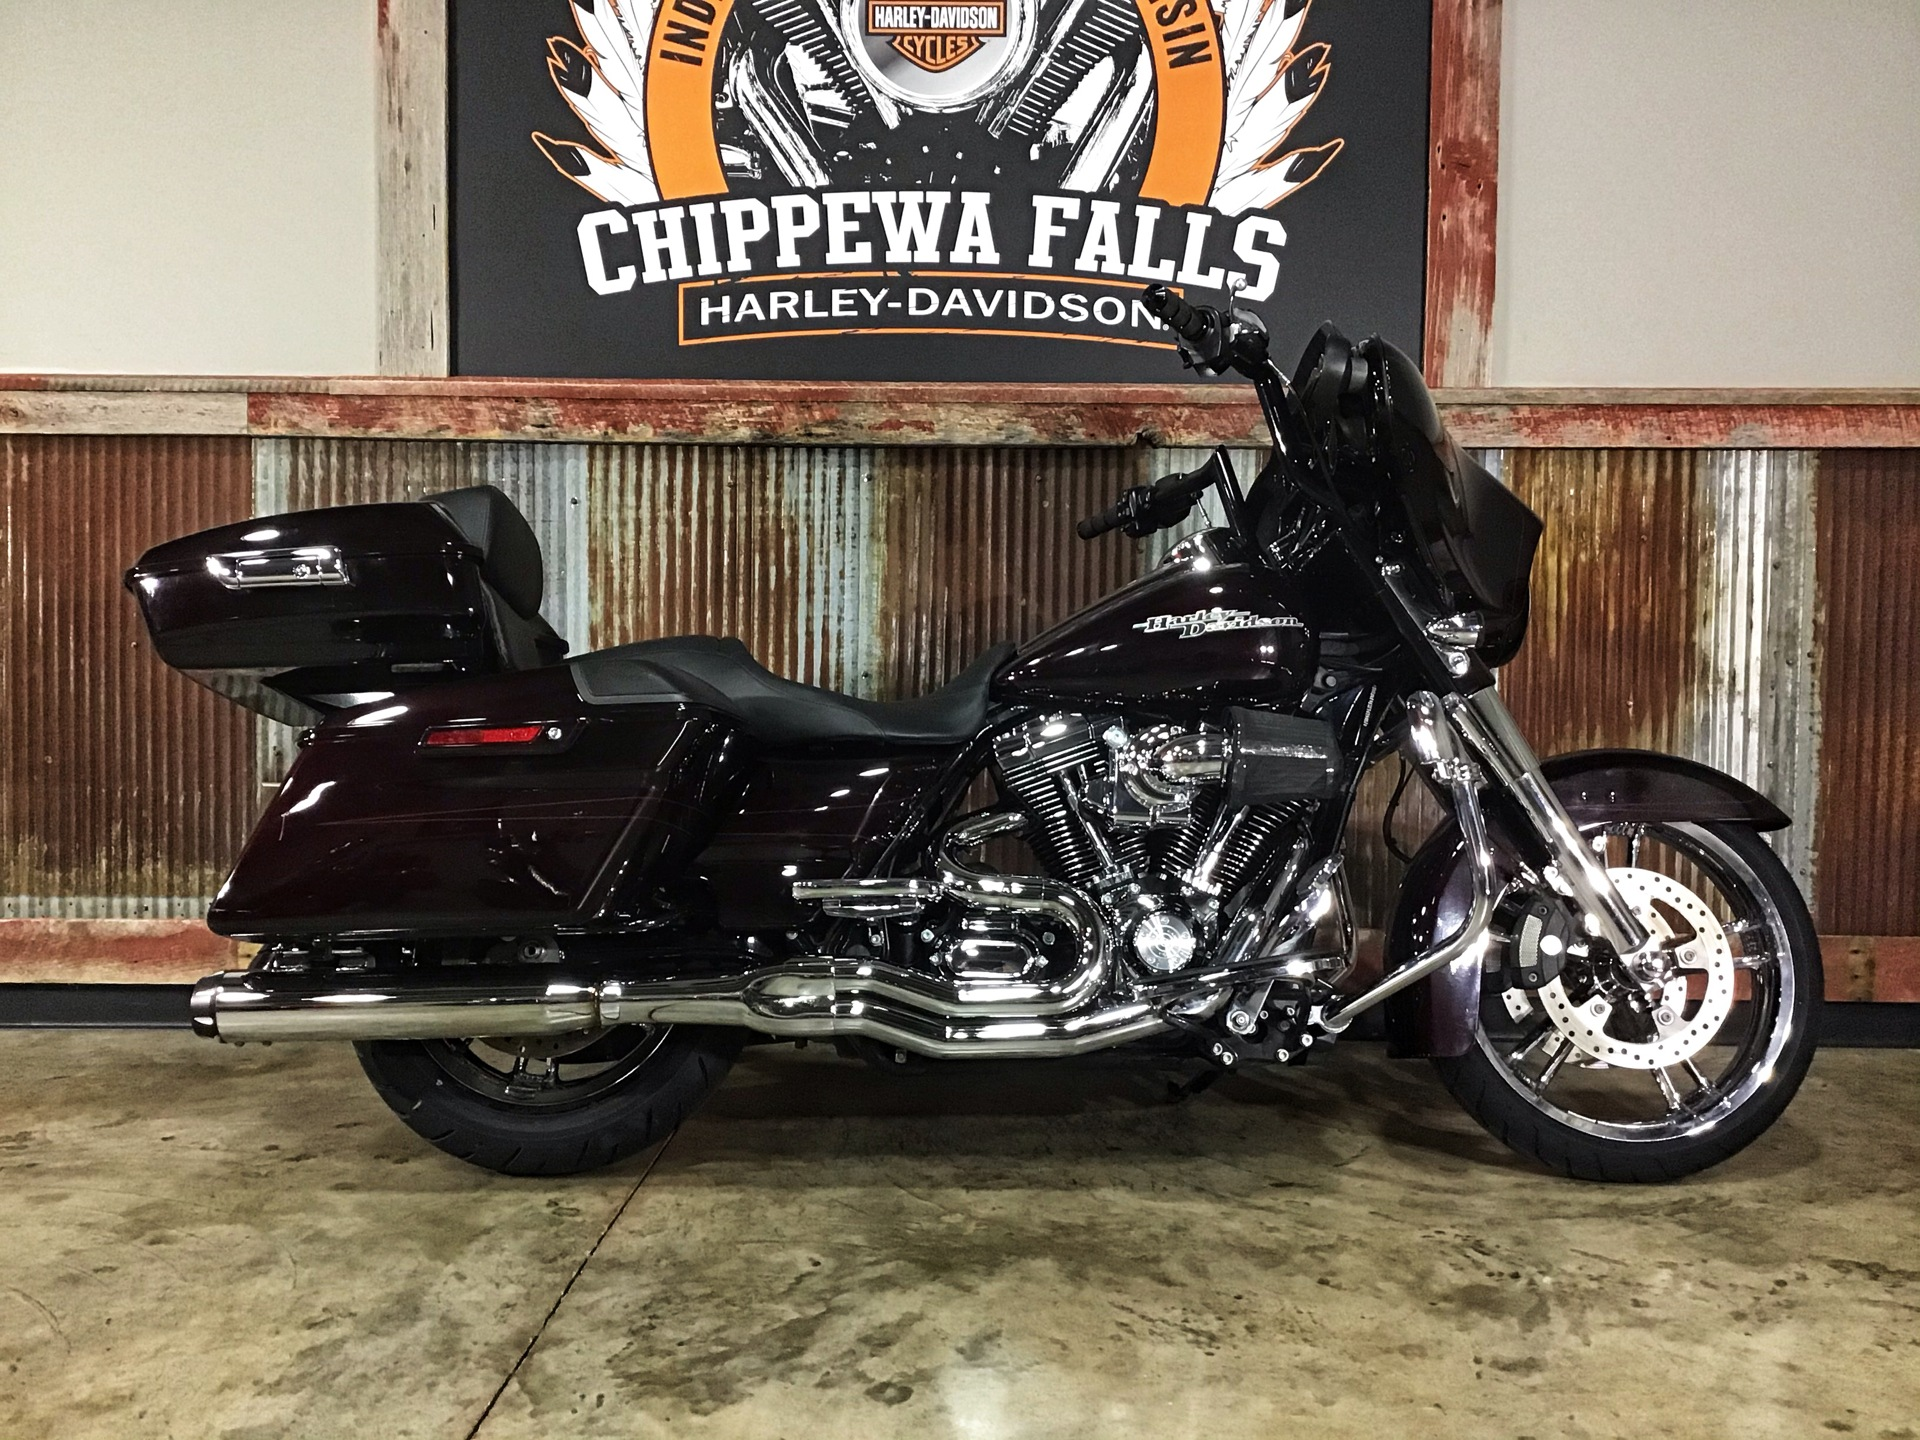 2014 Harley-Davidson Street Glide® Special in Chippewa Falls, Wisconsin - Photo 2